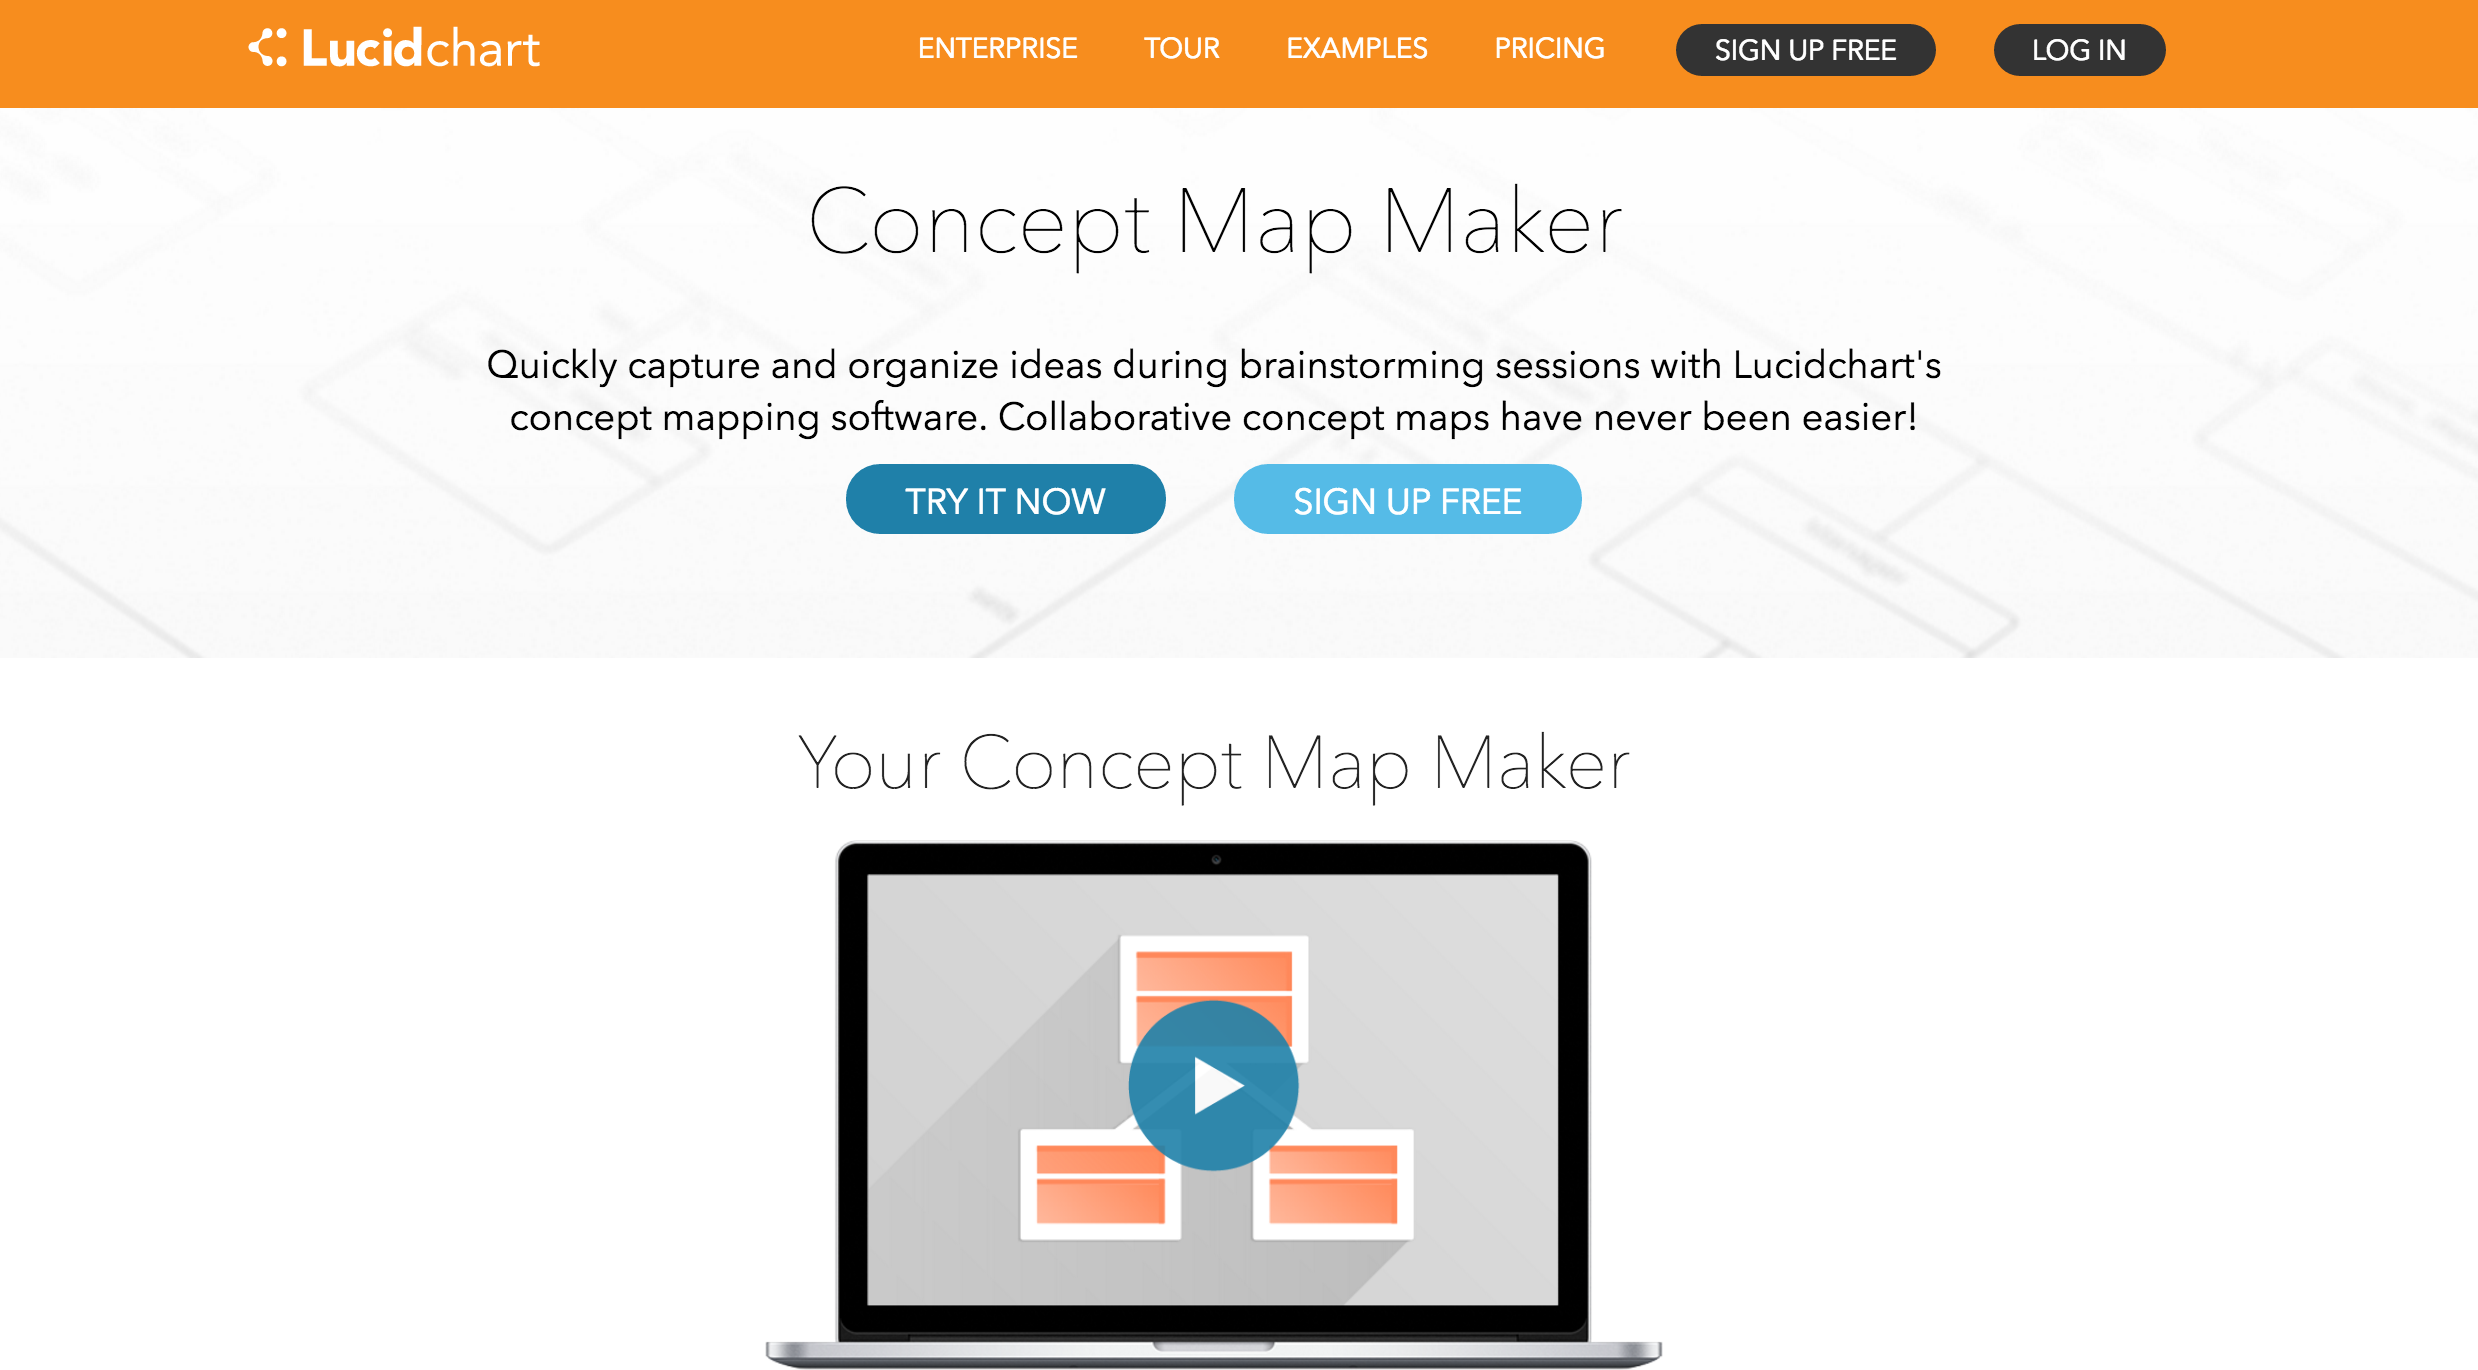 Lucidchart concept mapping and brainstorming software